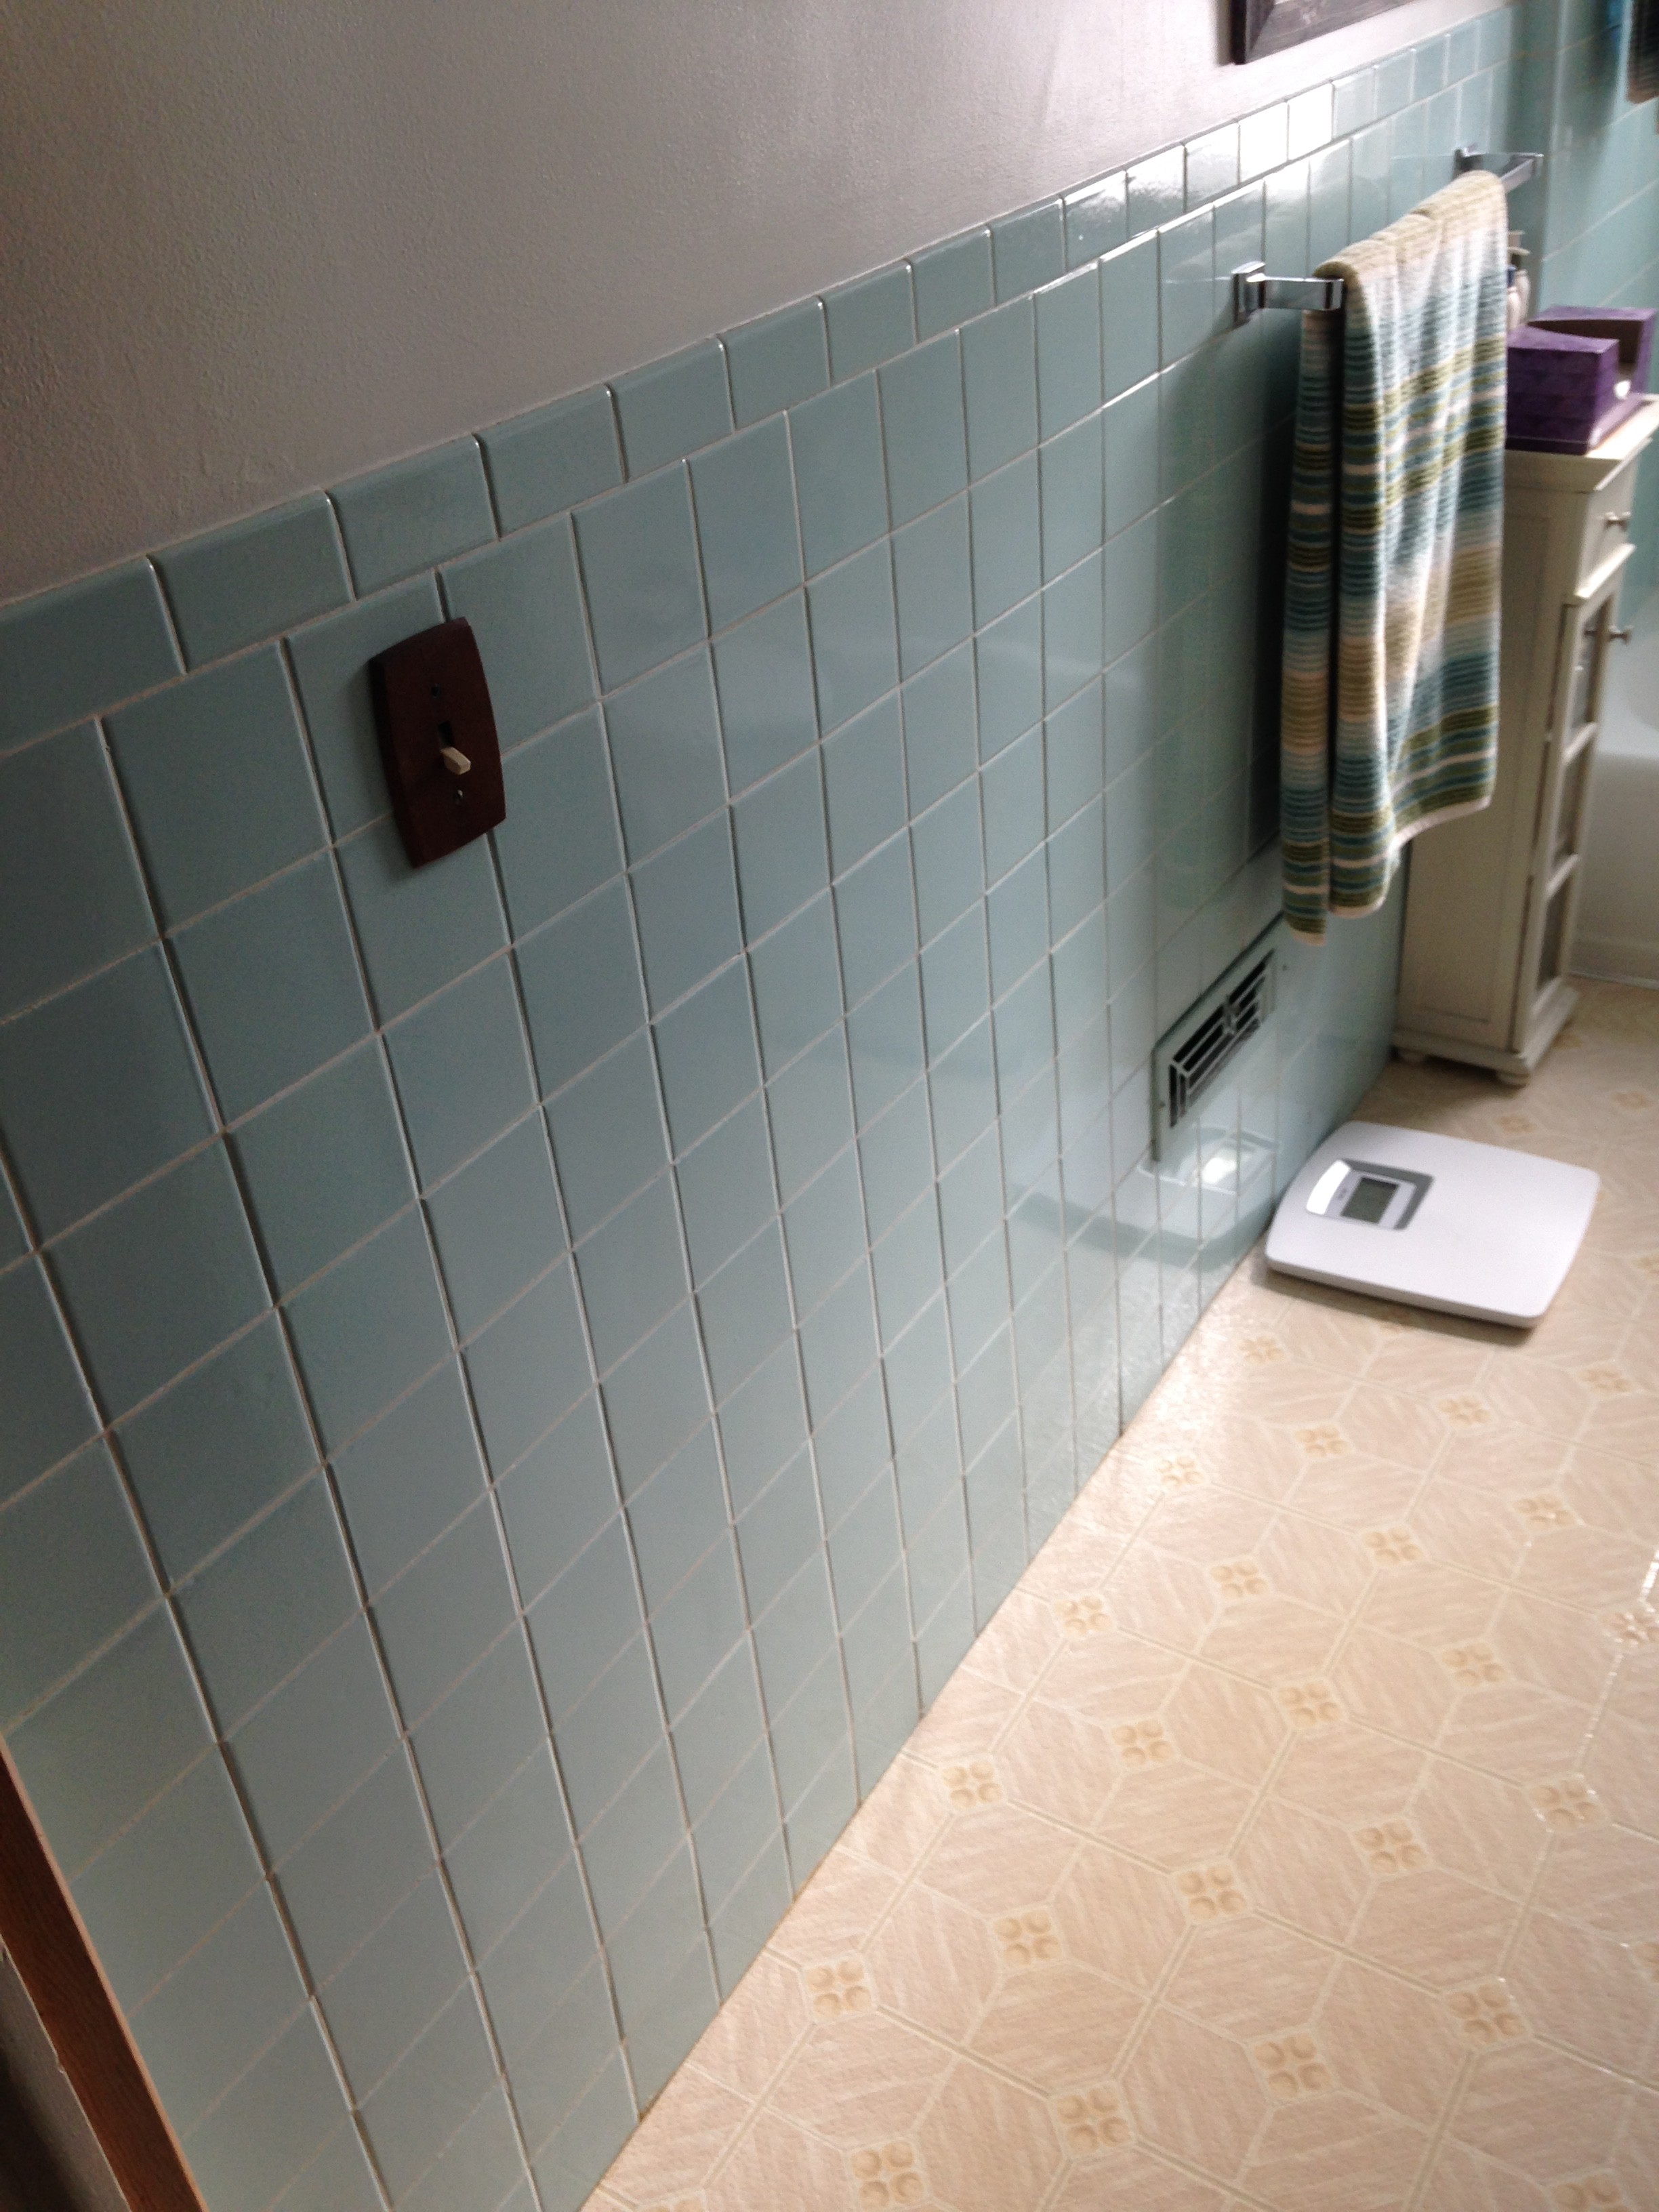 Full Bathroom Tile Remodel North Royalton OH Quality Design - Bathroom remodeling cleveland ohio